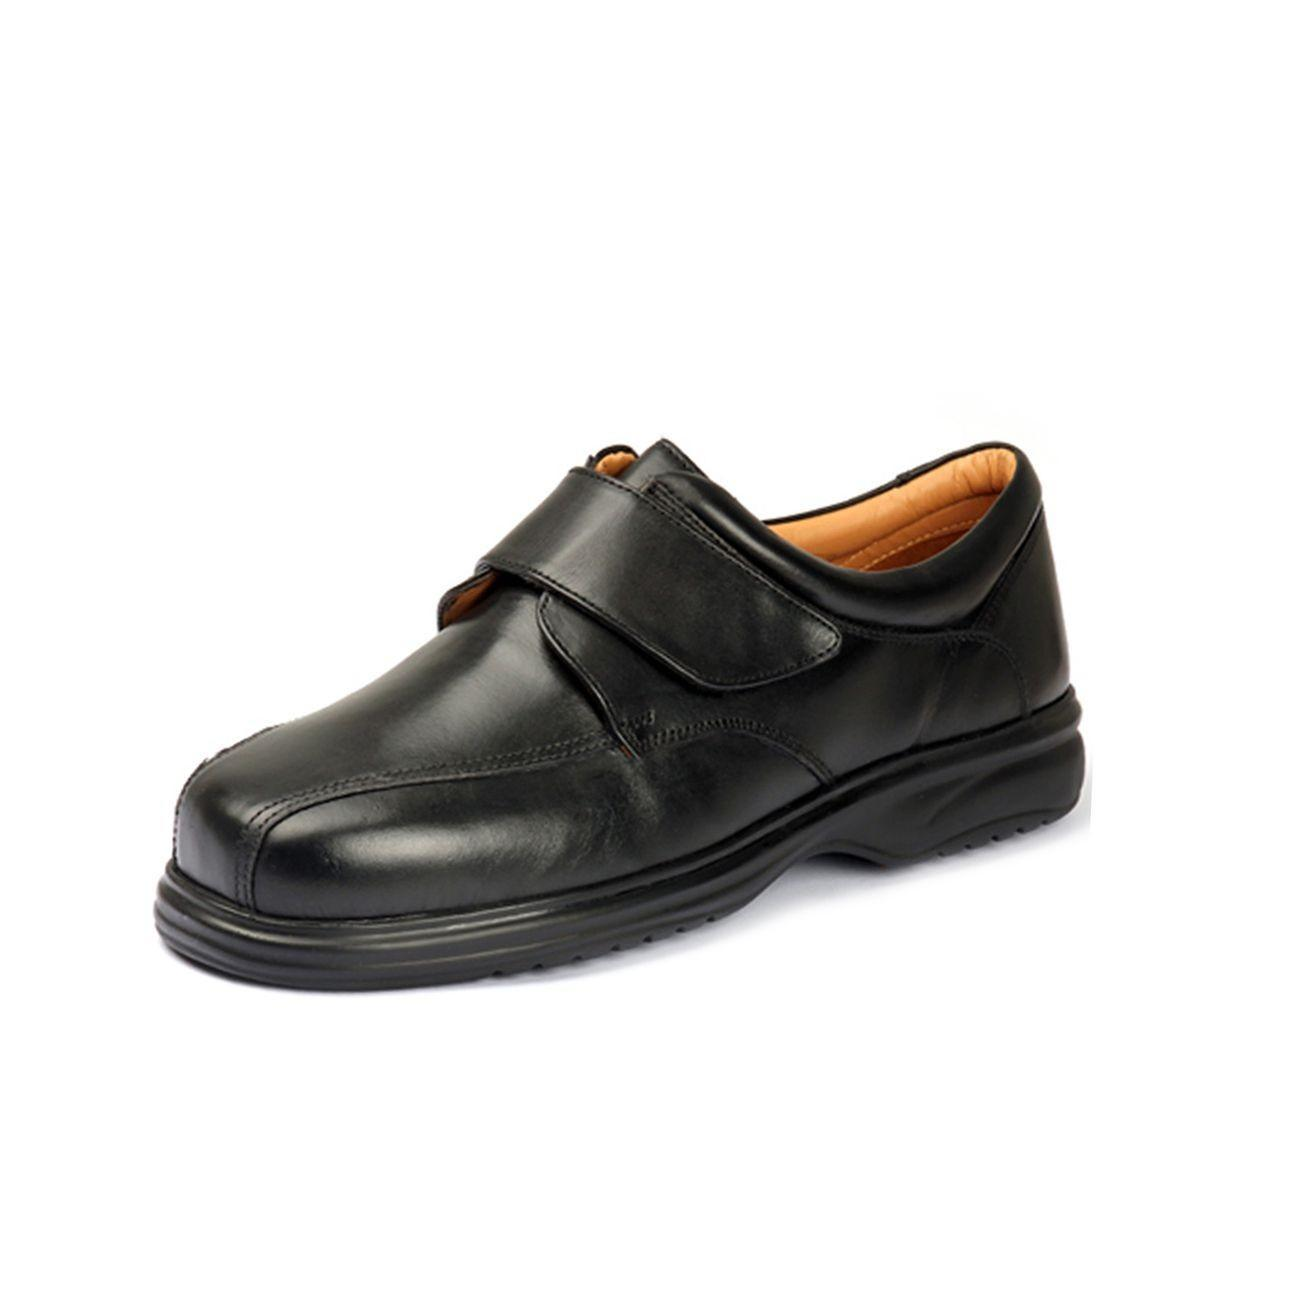 tony leather wider fit mens shoes much more mobility sussex